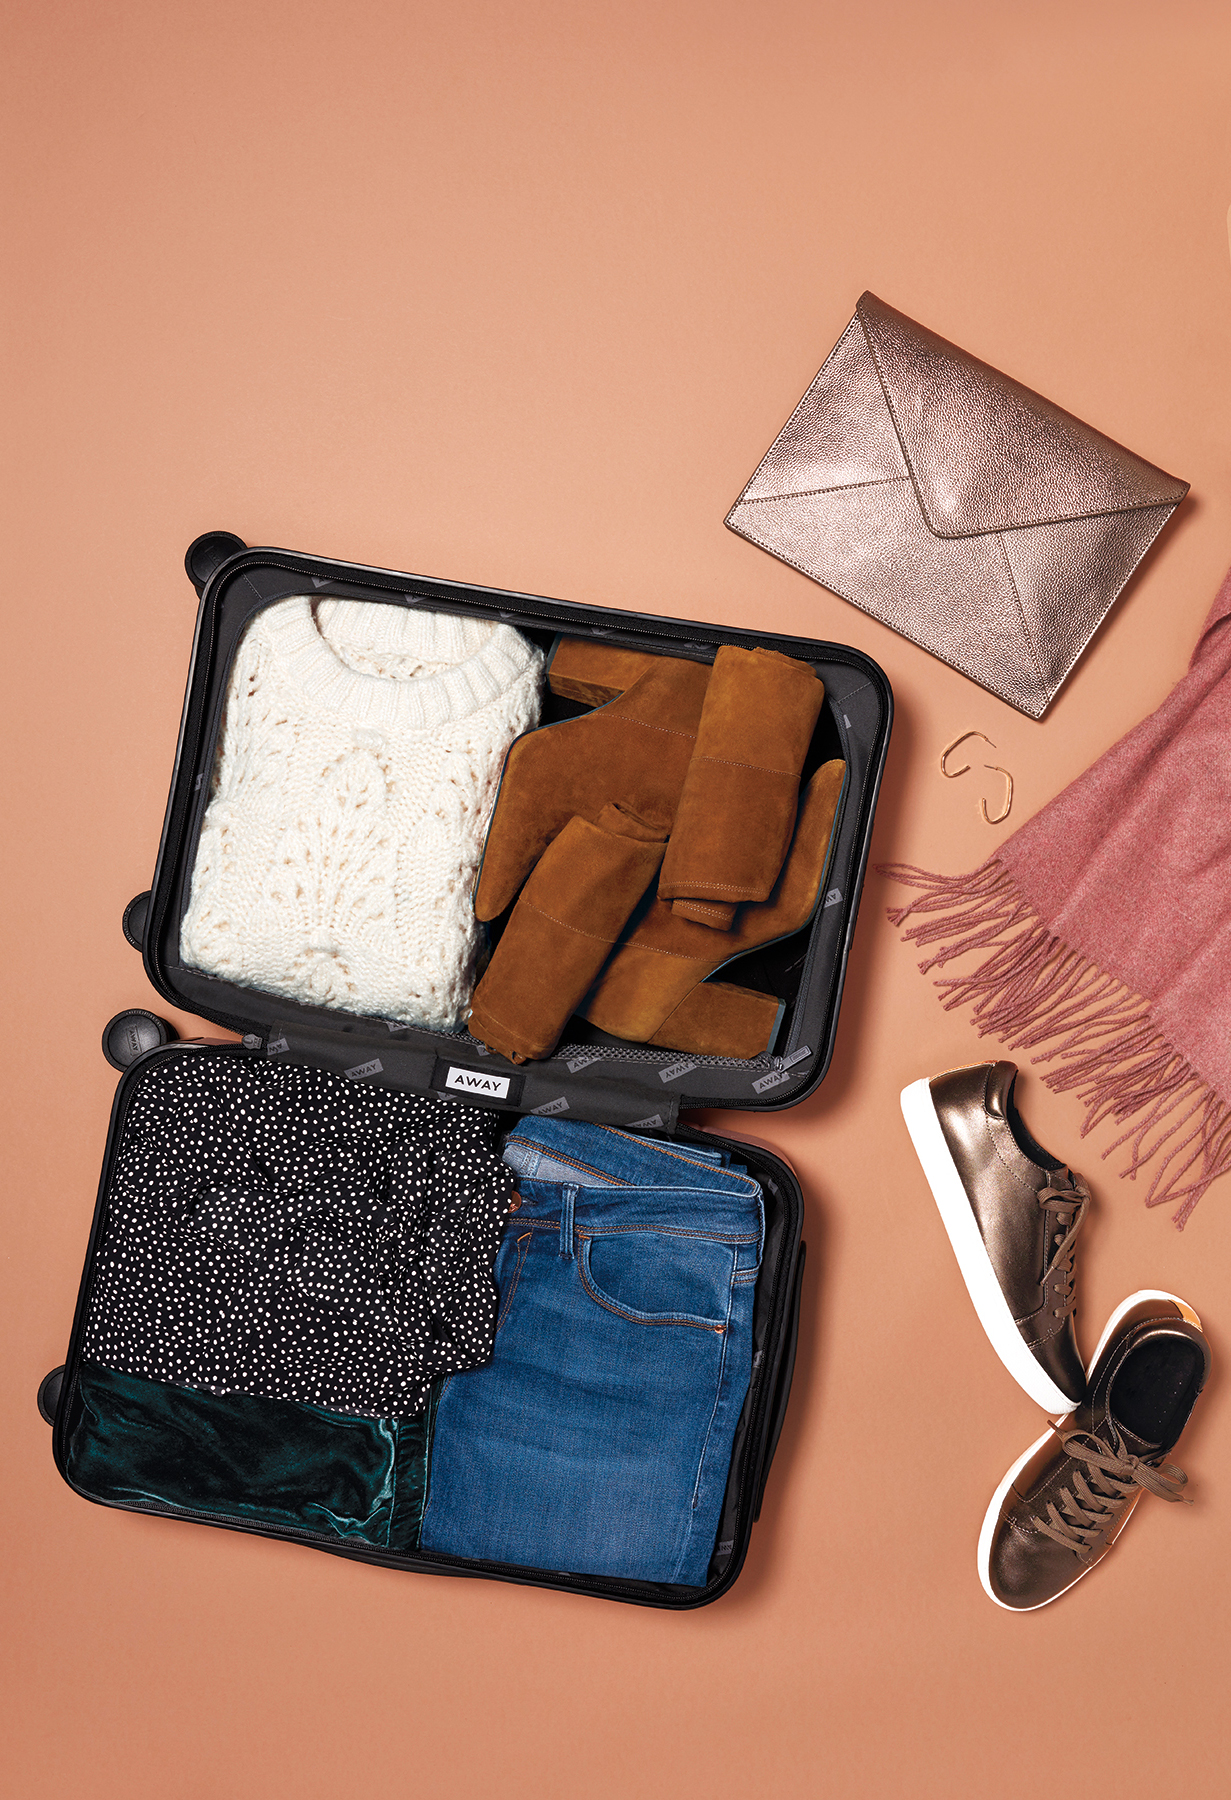 Tout: Holiday Wardrobe That Fits in a Carry-On (1118STY)